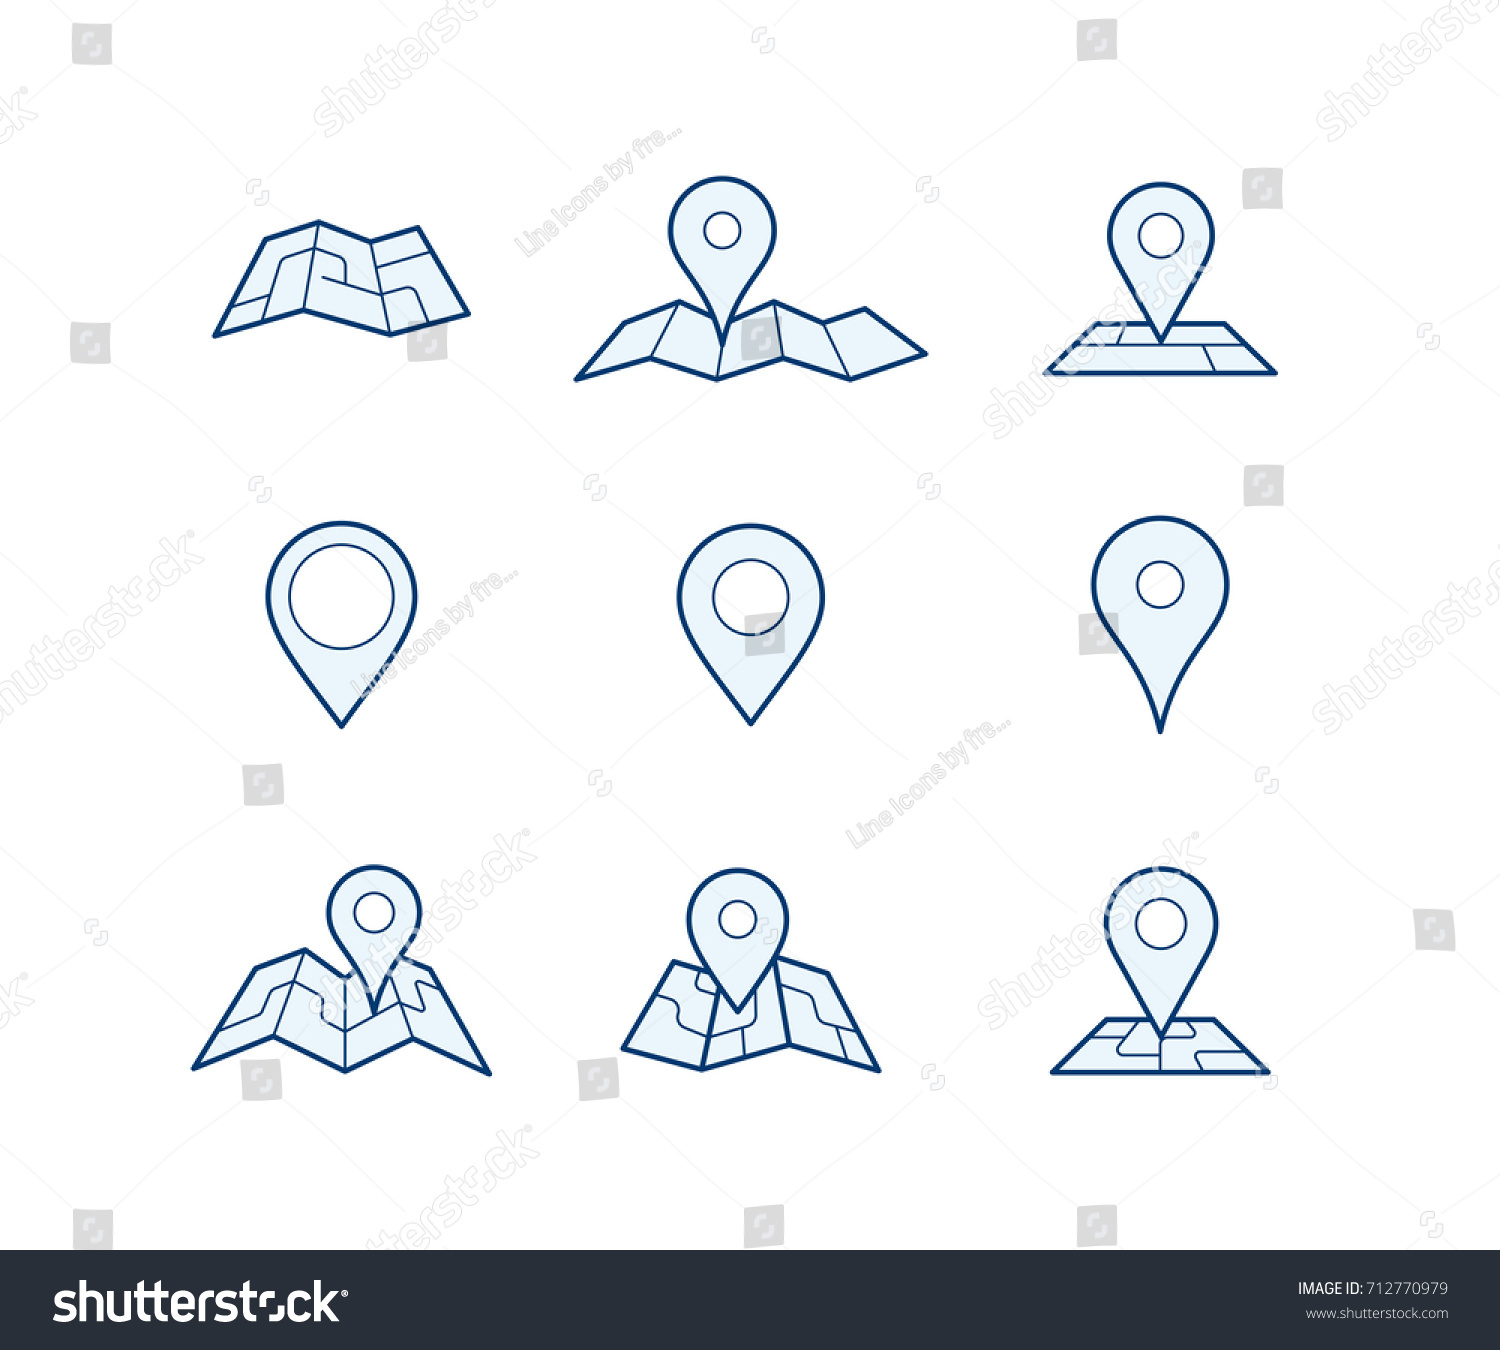 geo pins maps your own custom stock vector royalty free 712770979